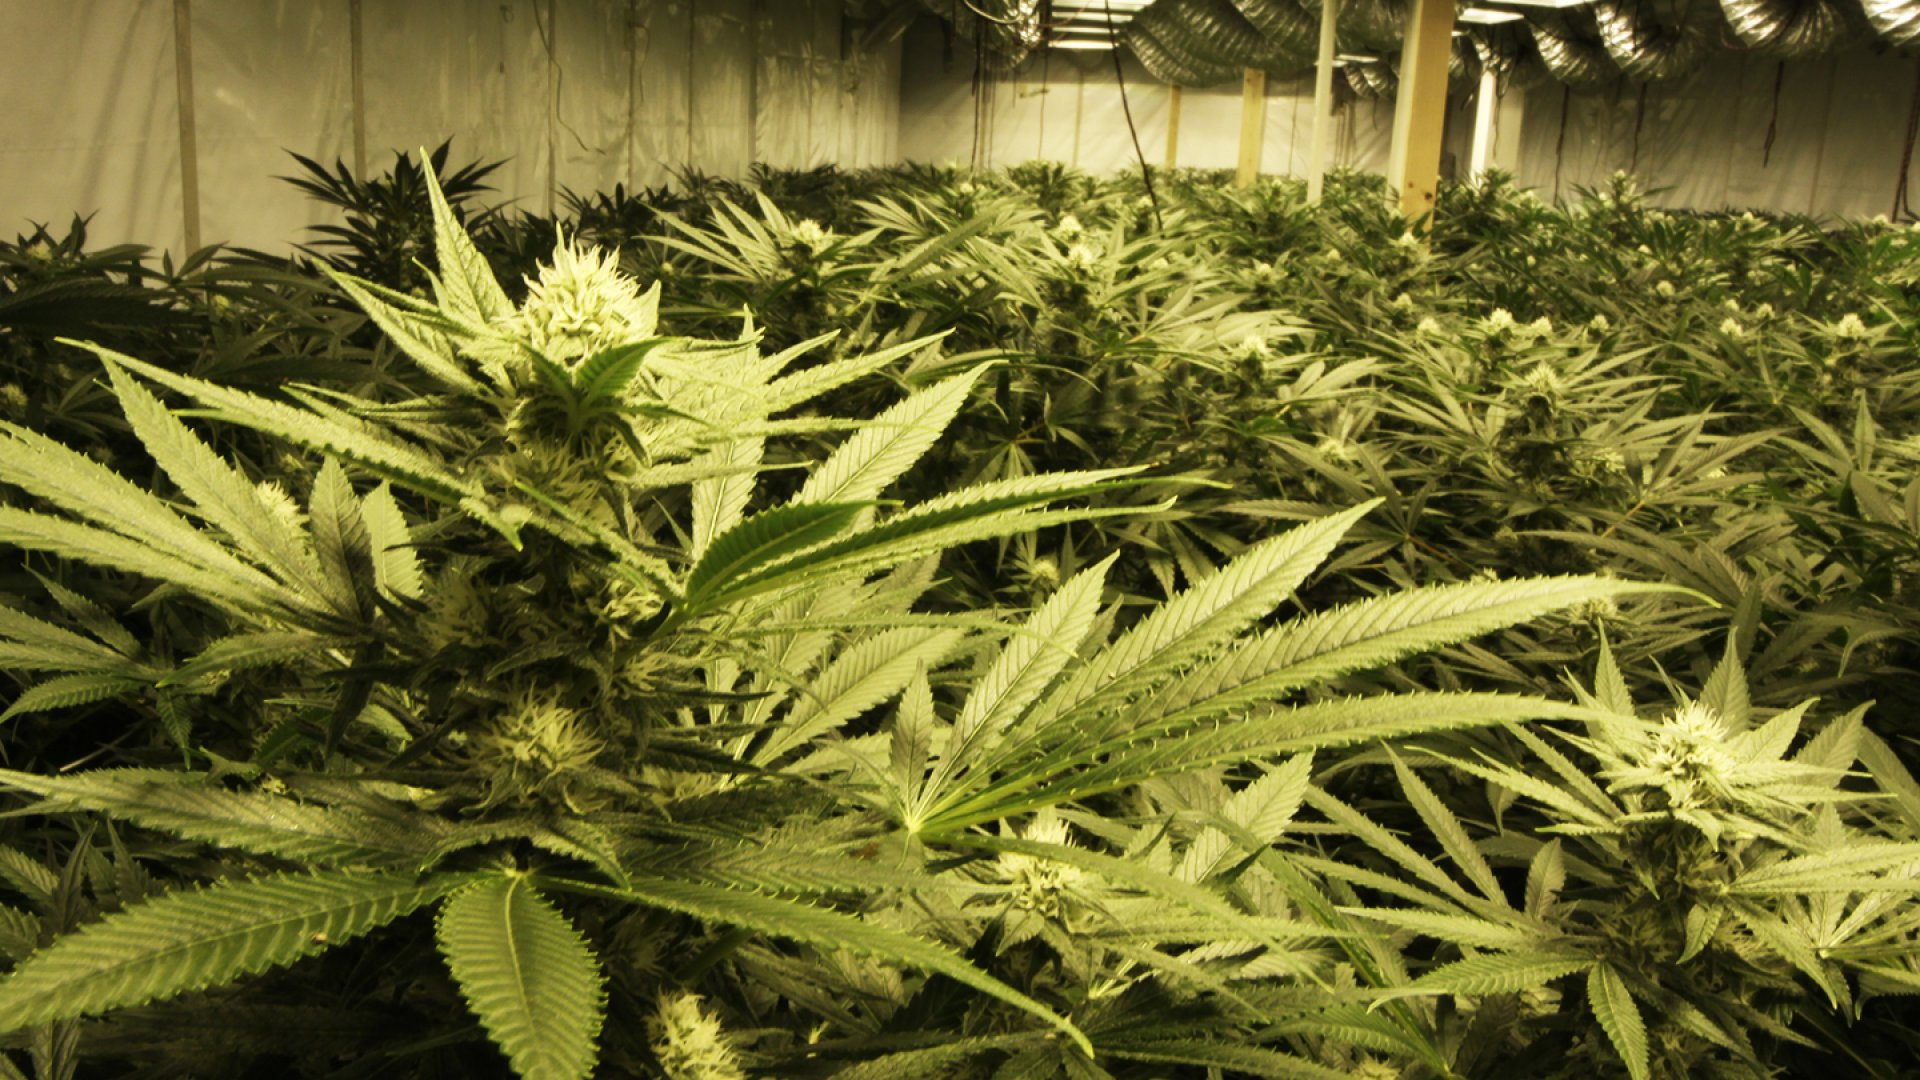 Growing Up With the Harvest: Oregon Pot Entrepreneur Ready for the Legal Market